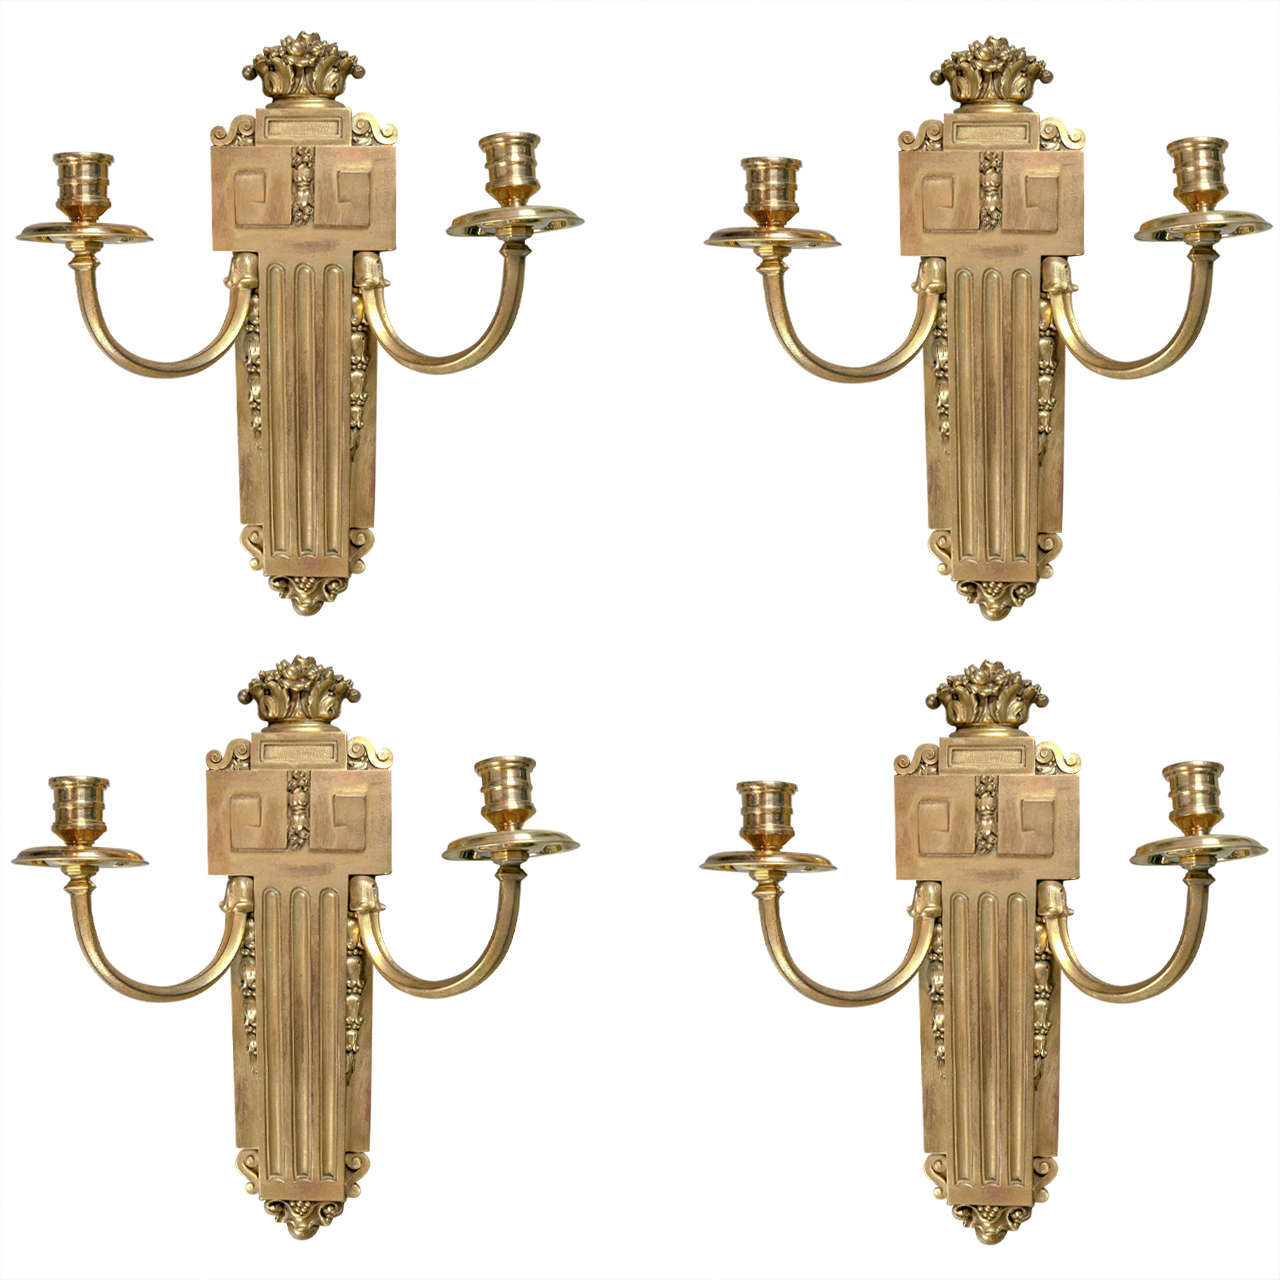 Pair of Neoclassical Style Caldwell Sconces